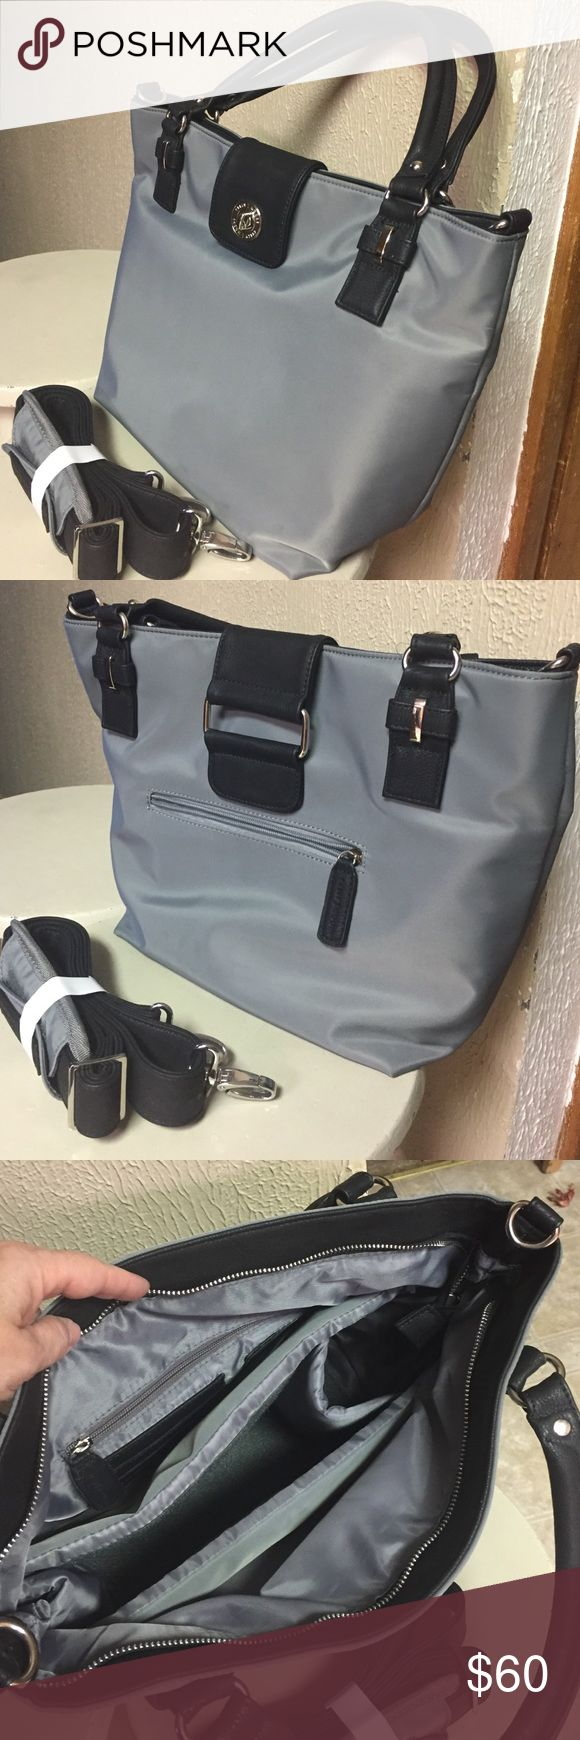 Kelly Moore Handbag/Camera bag Kelly Moore handbag/camera bag. Zip pocket on back. Zip pocket 4 card slots inside. Also comes with removable padded basket to protect camera gear. Can be removed to use as a Handbag. Comes with dust bag & padded shoulder strap. 12(w) 7(d) 11((h) Kelly Moore Bags Shoulder Bags